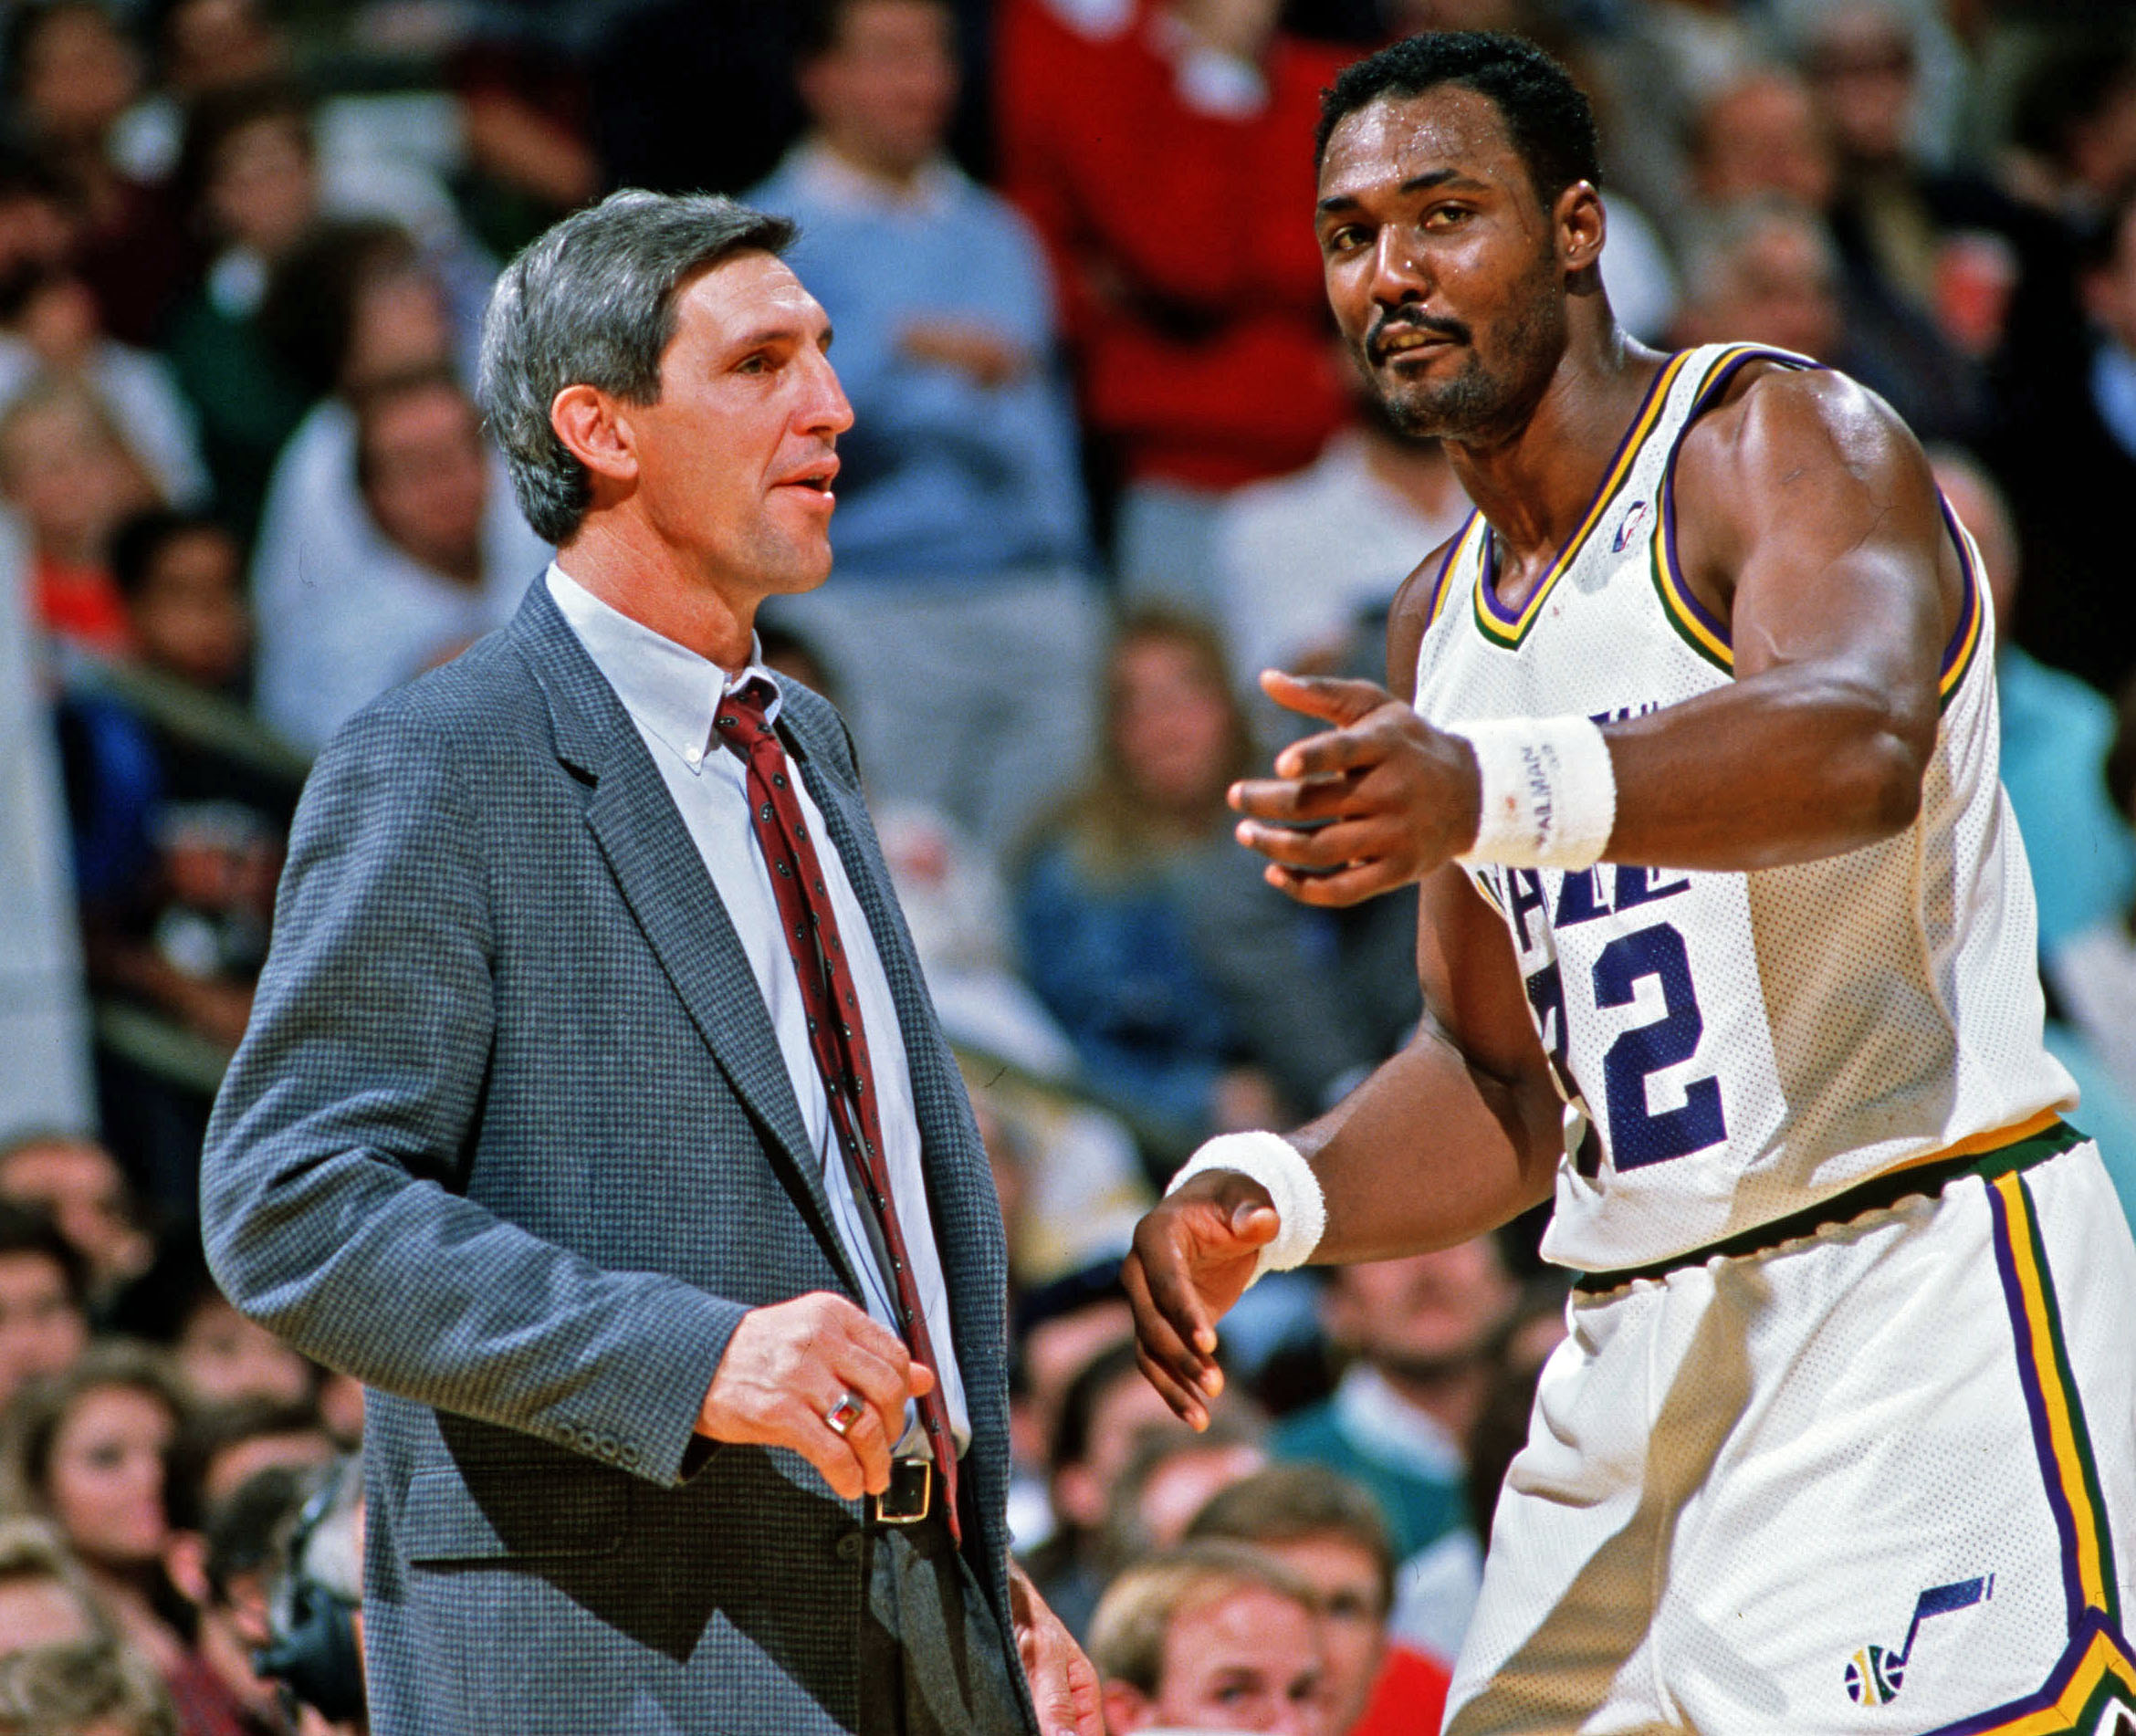 Jerry Sloan and Karl Malone